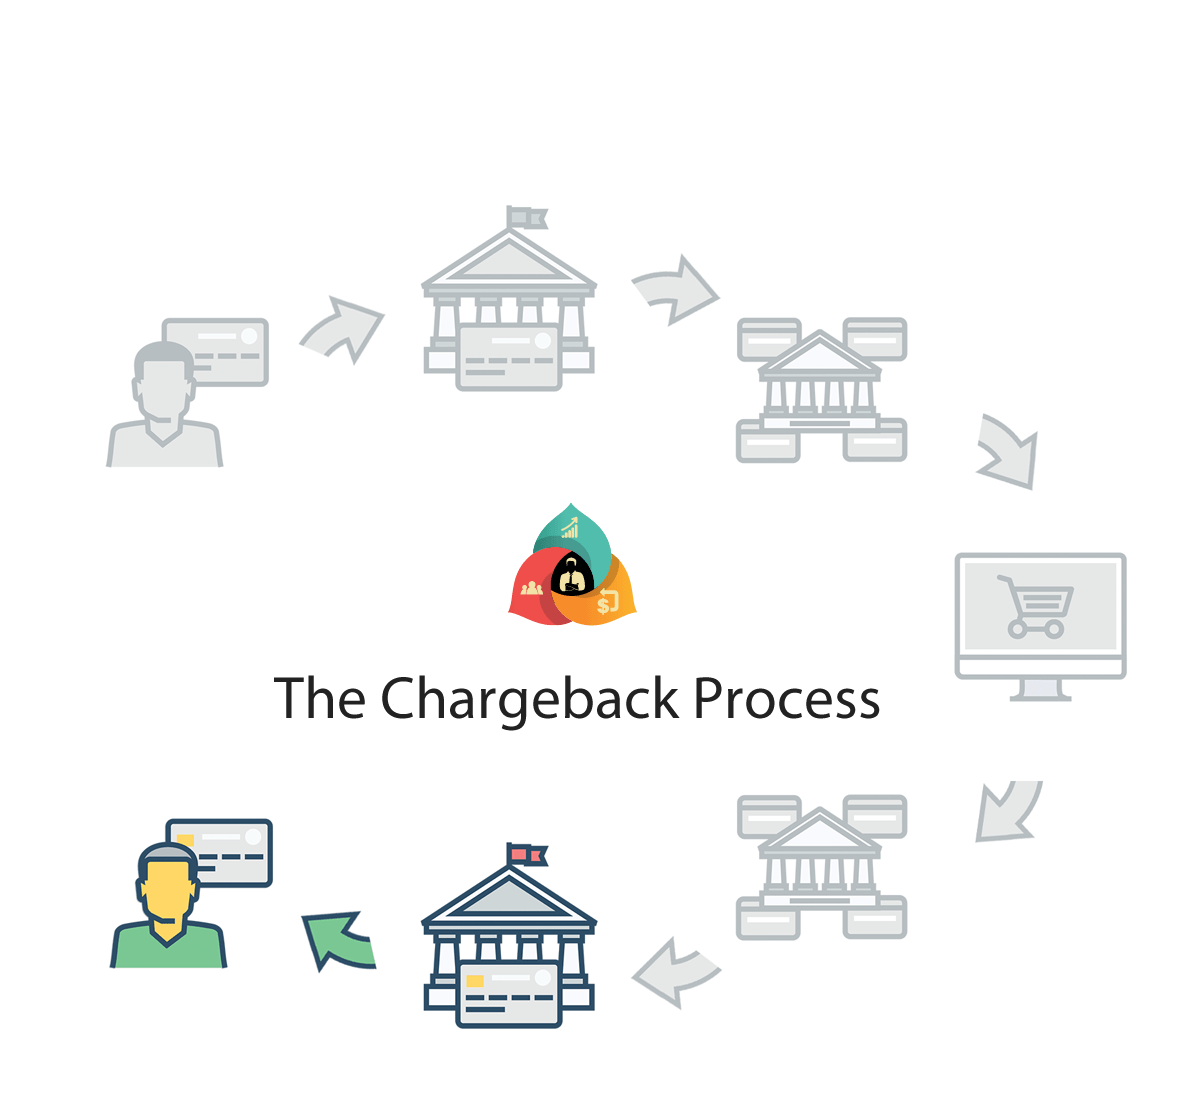 History Of Chargeback